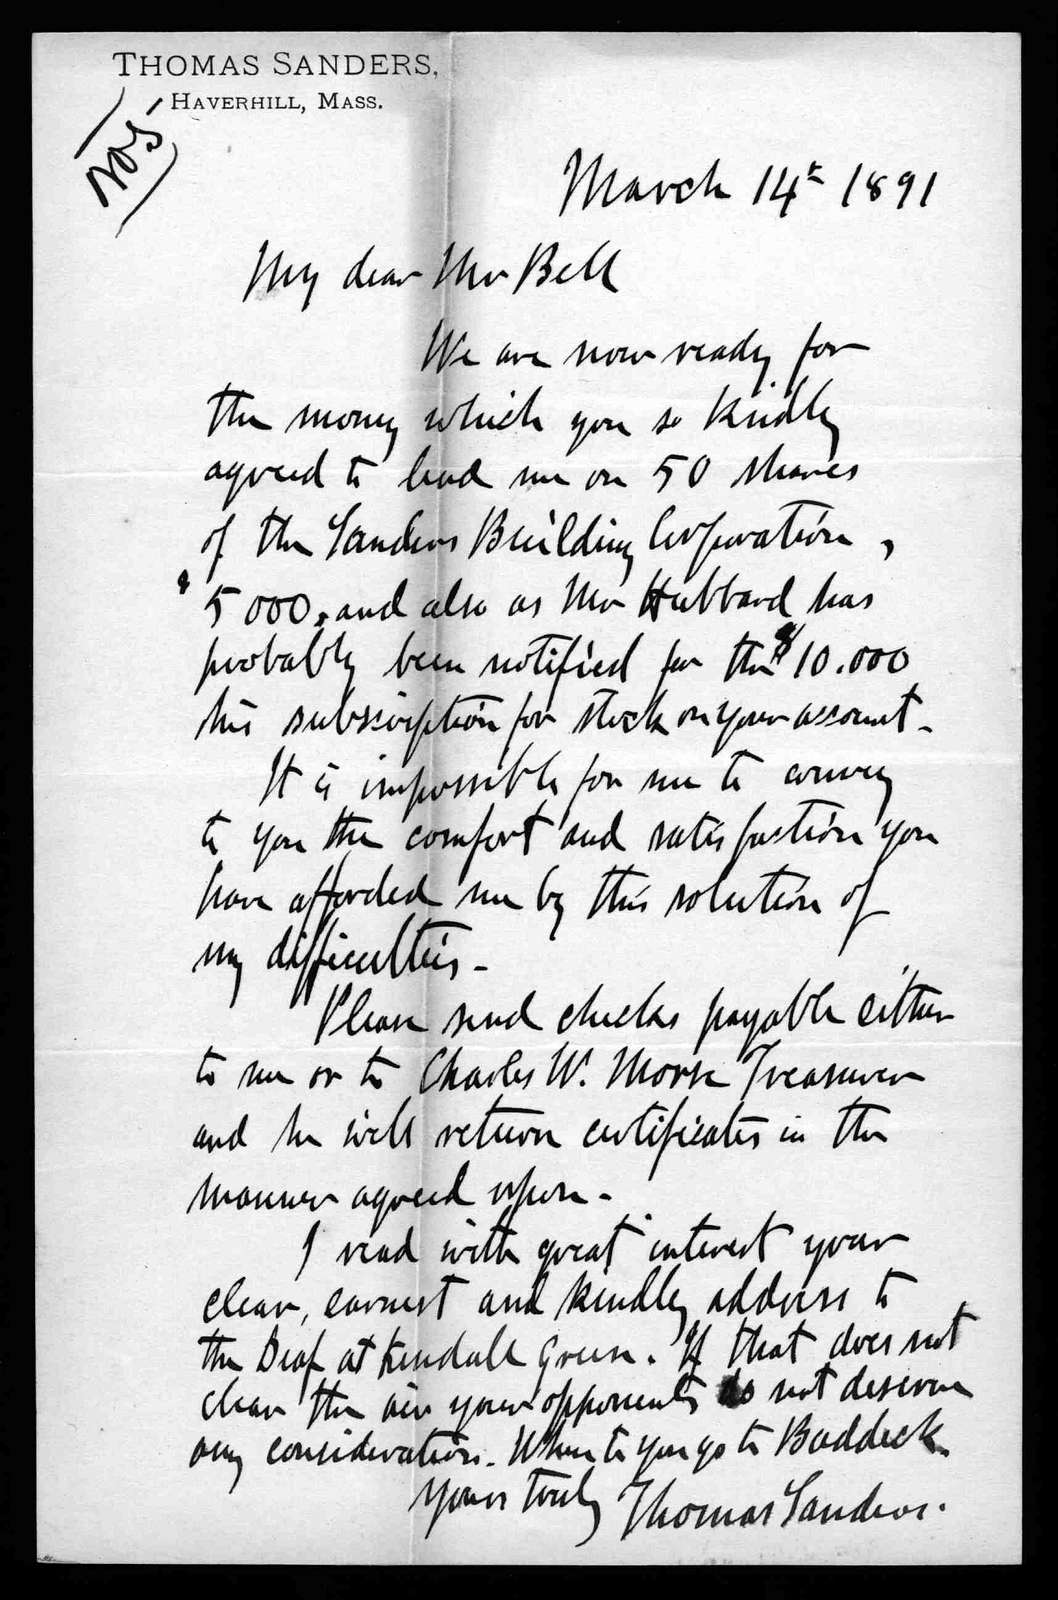 Letter from Thomas Sanders to Alexander Graham Bell, March 14, 1879